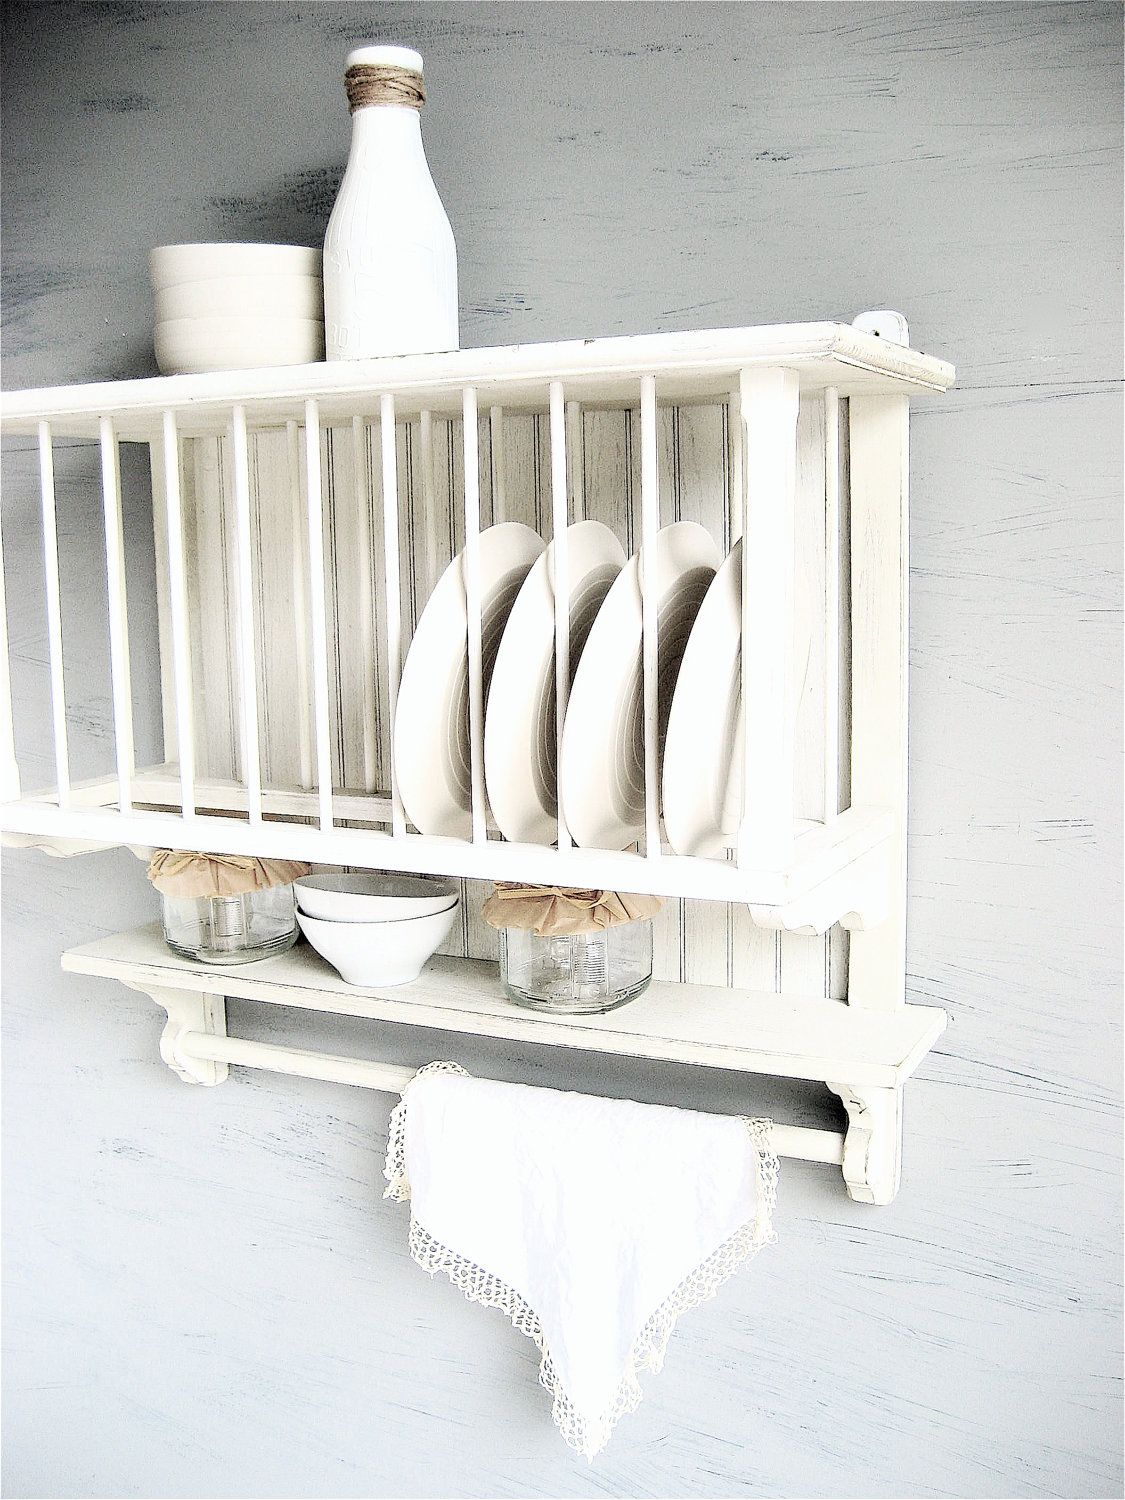 Vintage Plate Wall Rack. $165.00 via Etsy. & Vintage Plate Wall Rack. $165.00 via Etsy. | home stuff | Pinterest ...